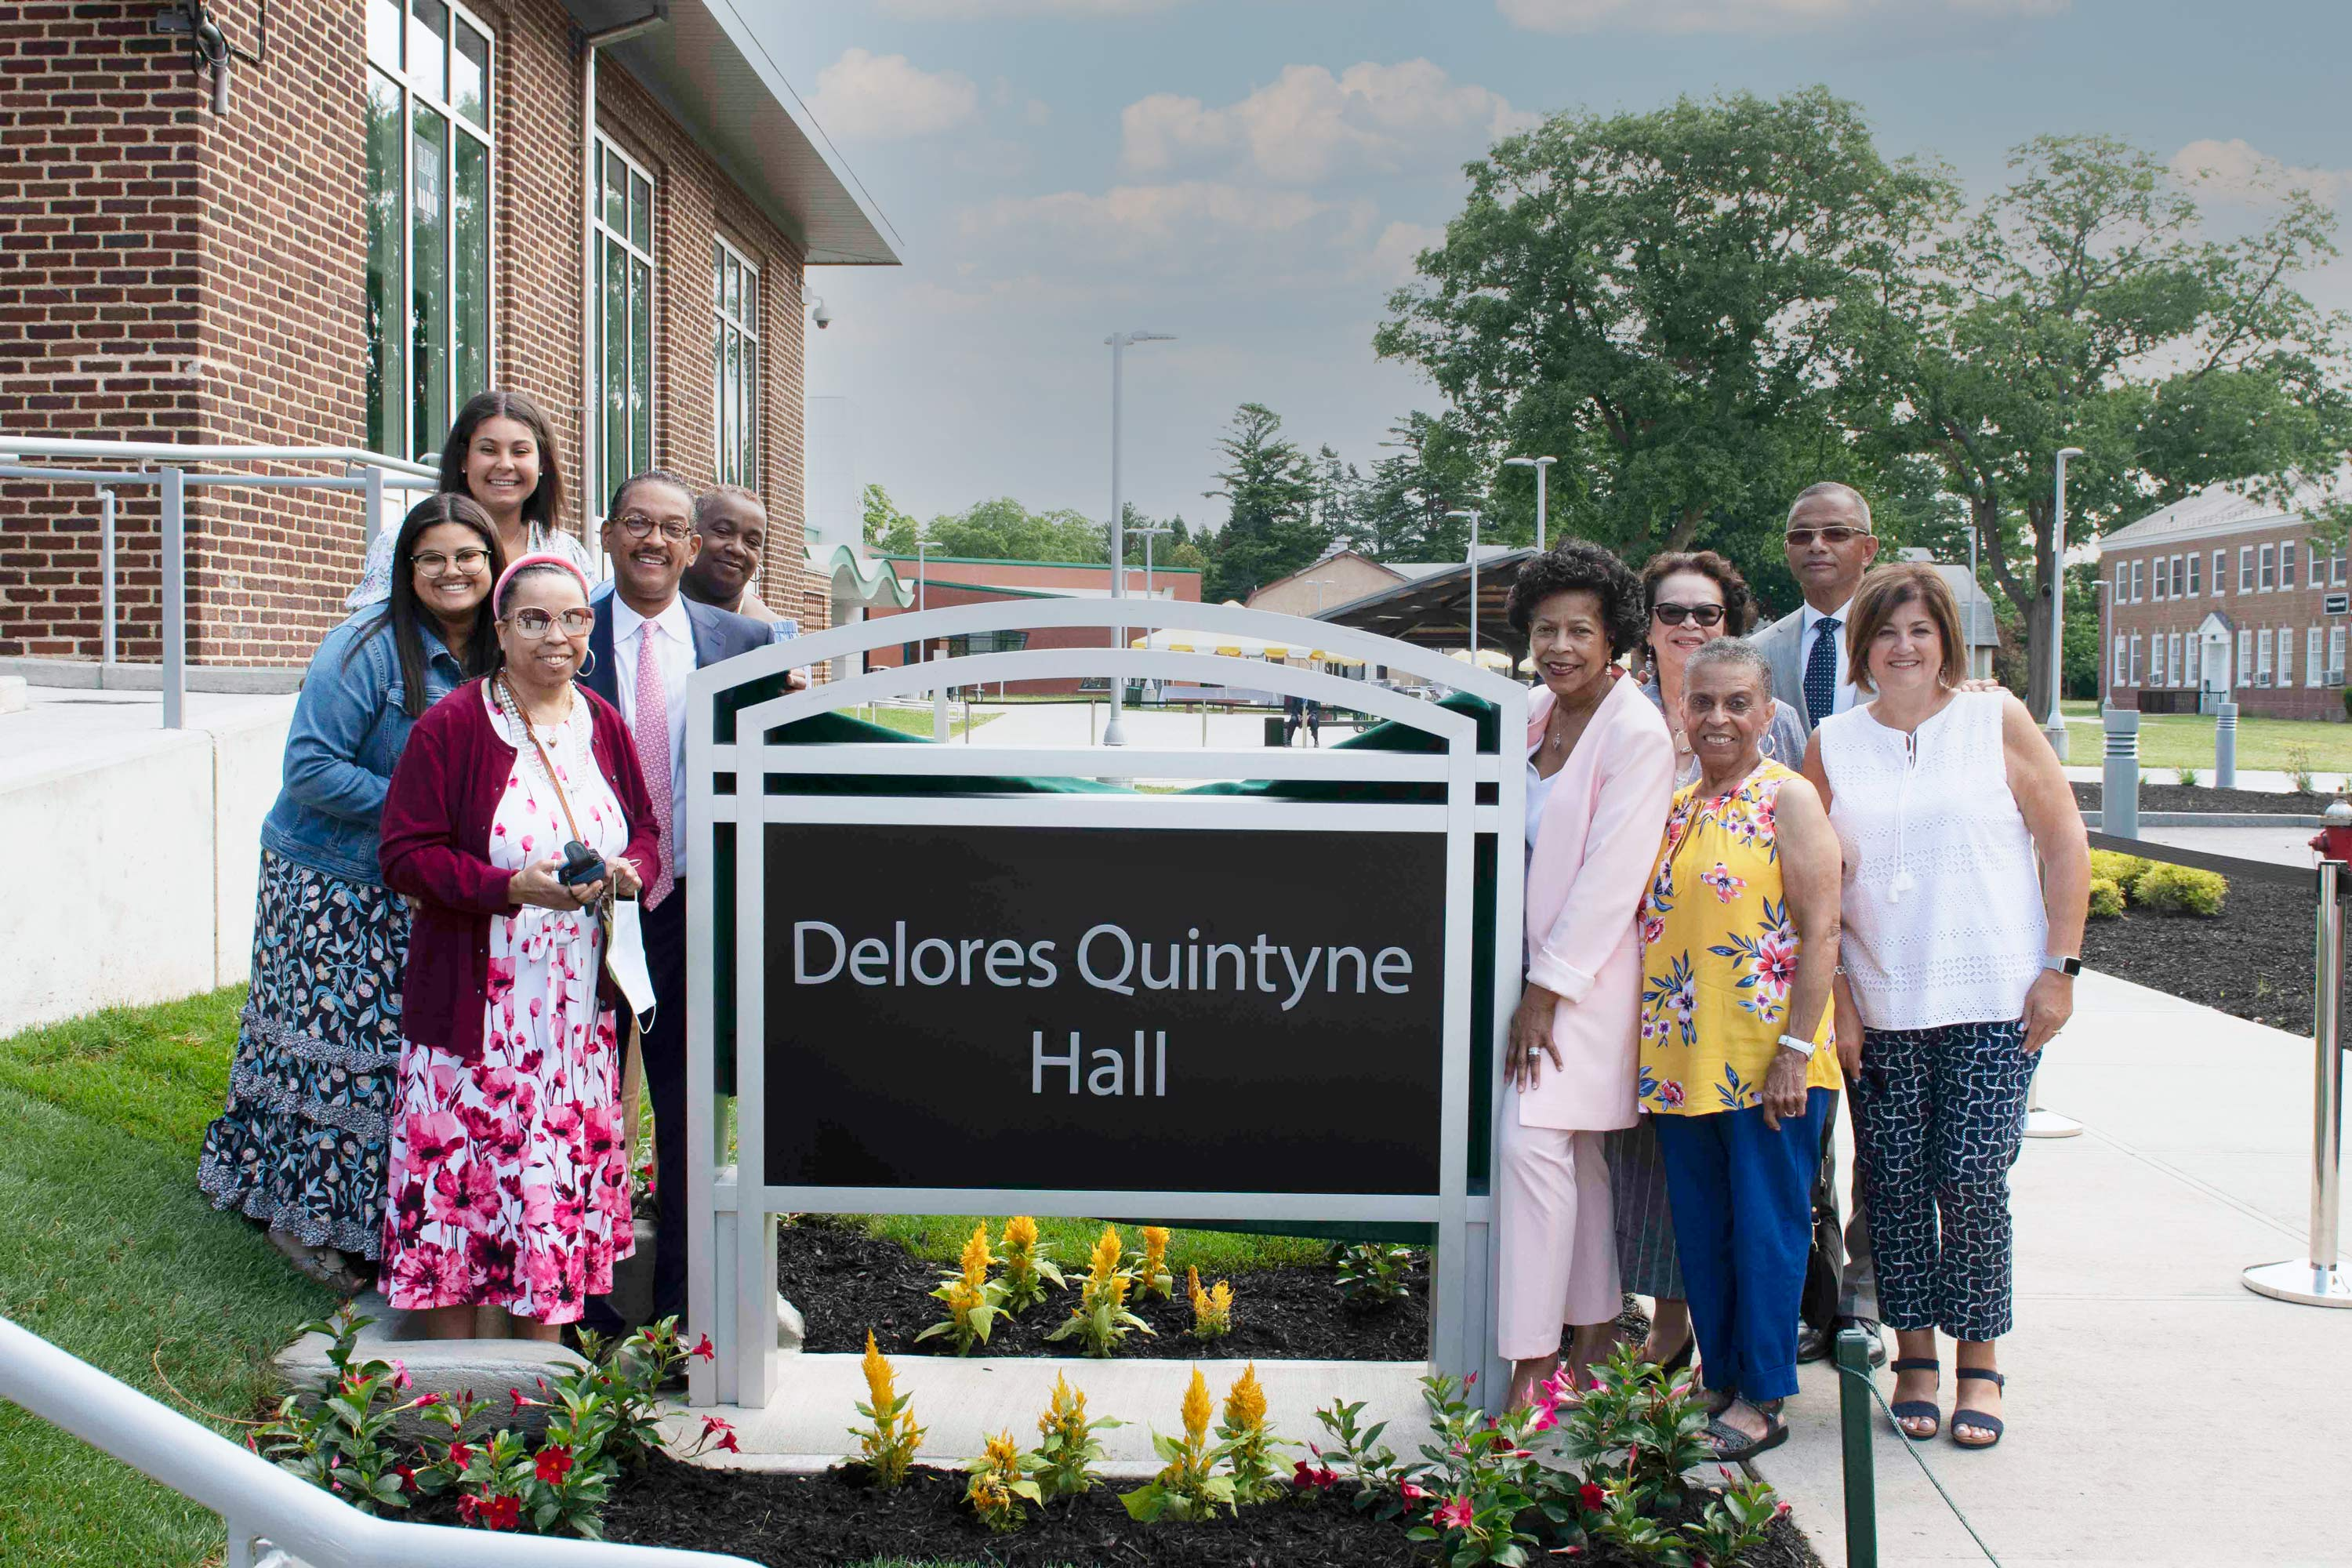 Delores Quintyne Hall Sign with Family Gathered Around